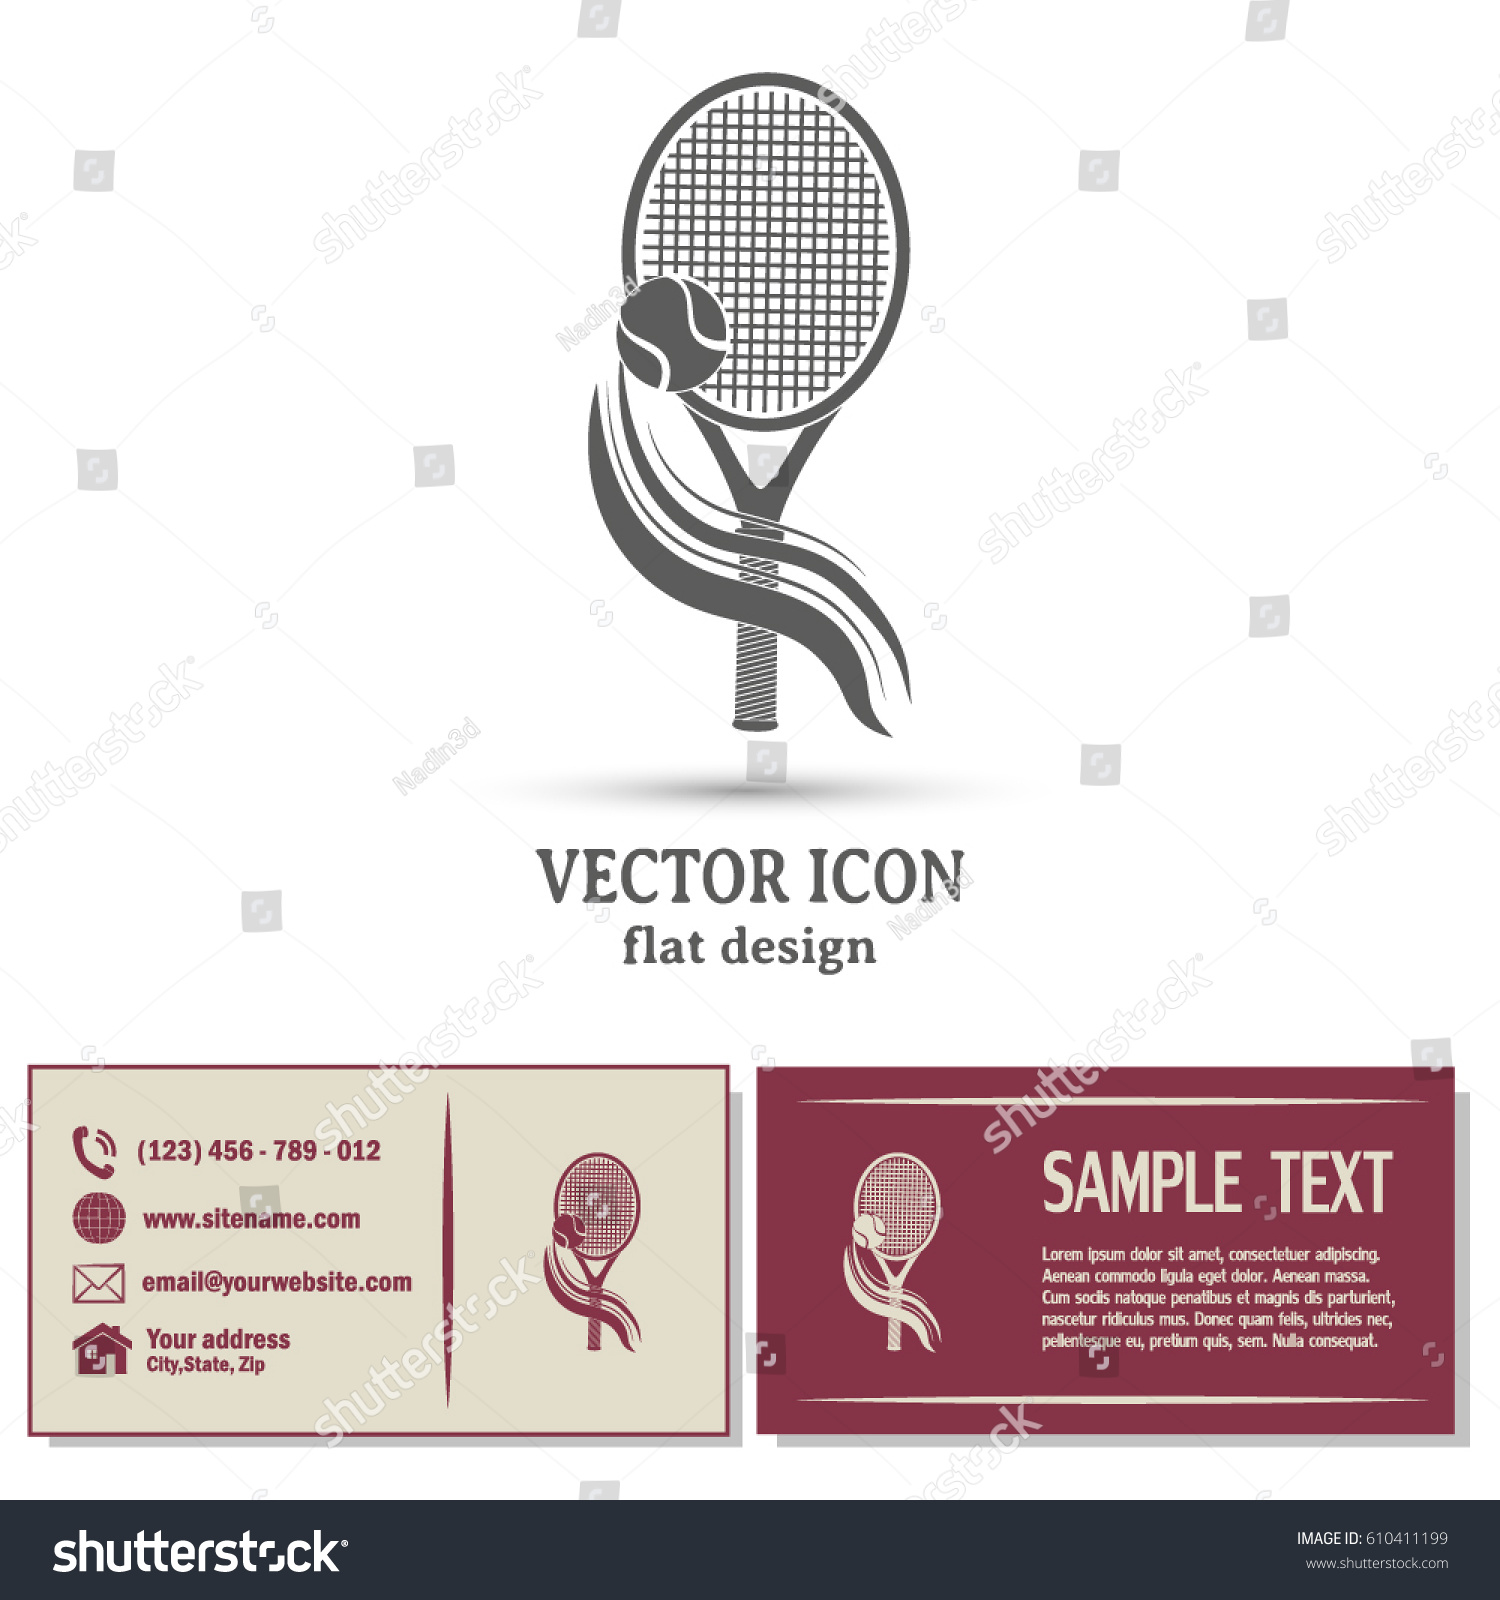 Business Cards Design Tennis Icon Stock Vector HD (Royalty Free ...